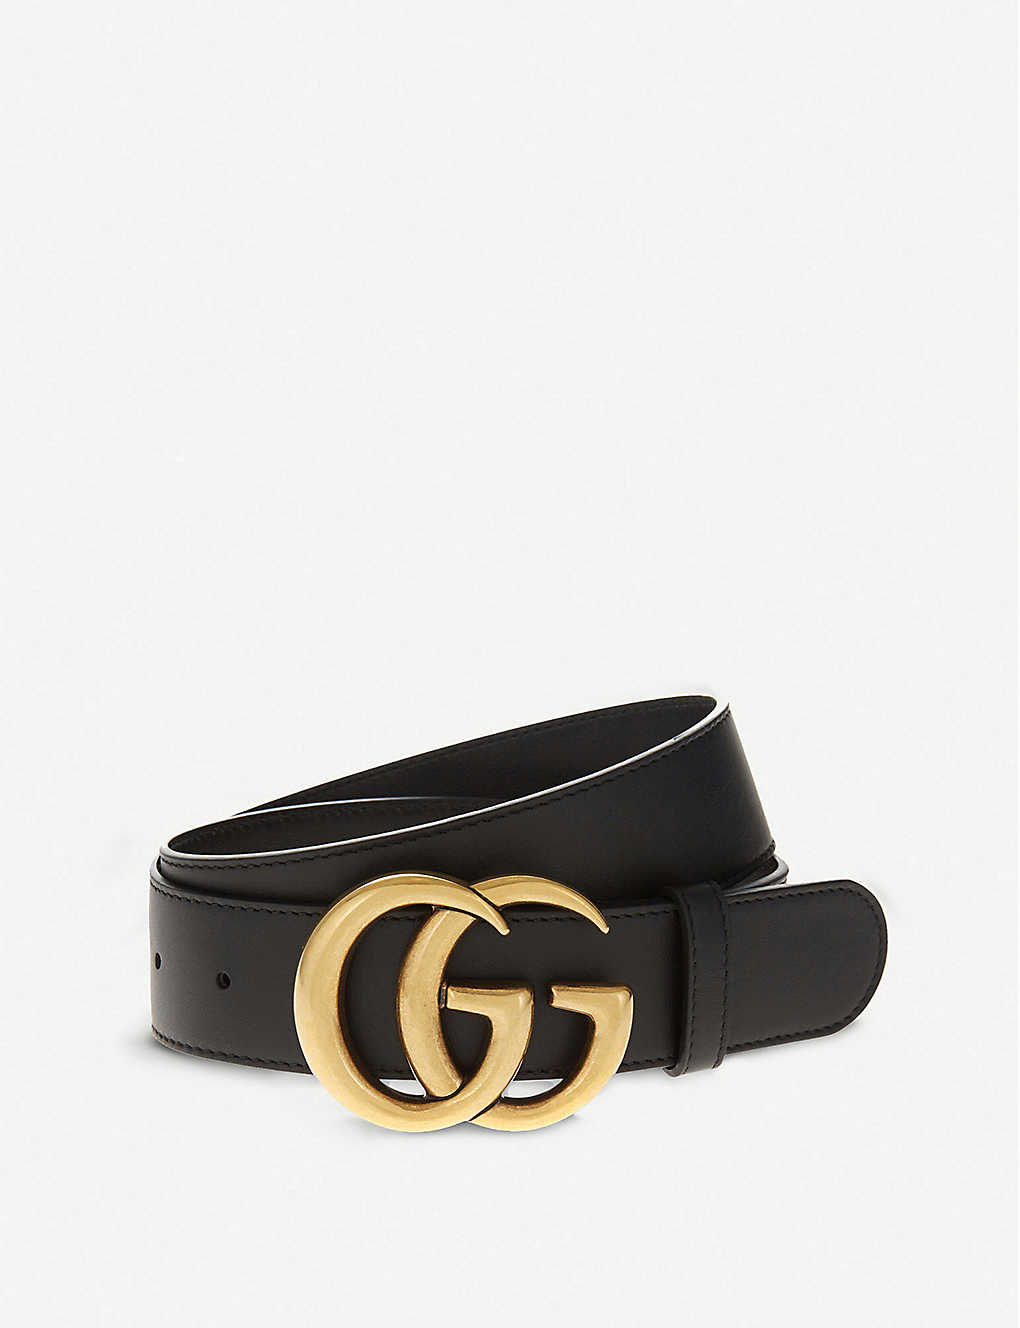 0d6555e2c43 Double G leather belt - Nero ...